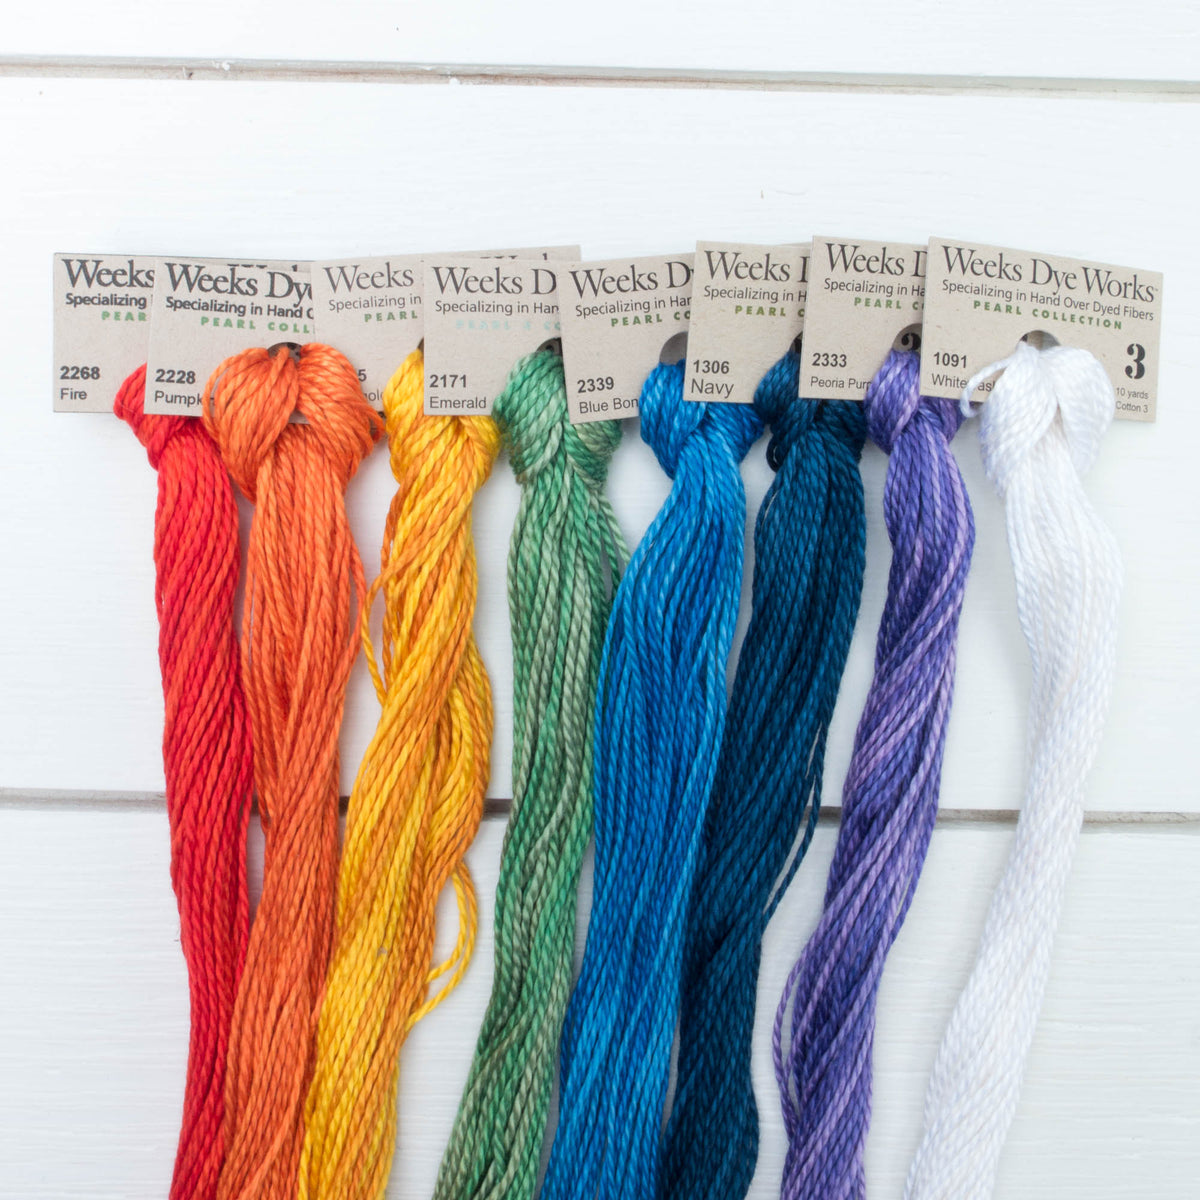 Size 3 Perle Cotton Thread - Weeks Dye Works Marigold (2225) Perle Cotton - Snuggly Monkey